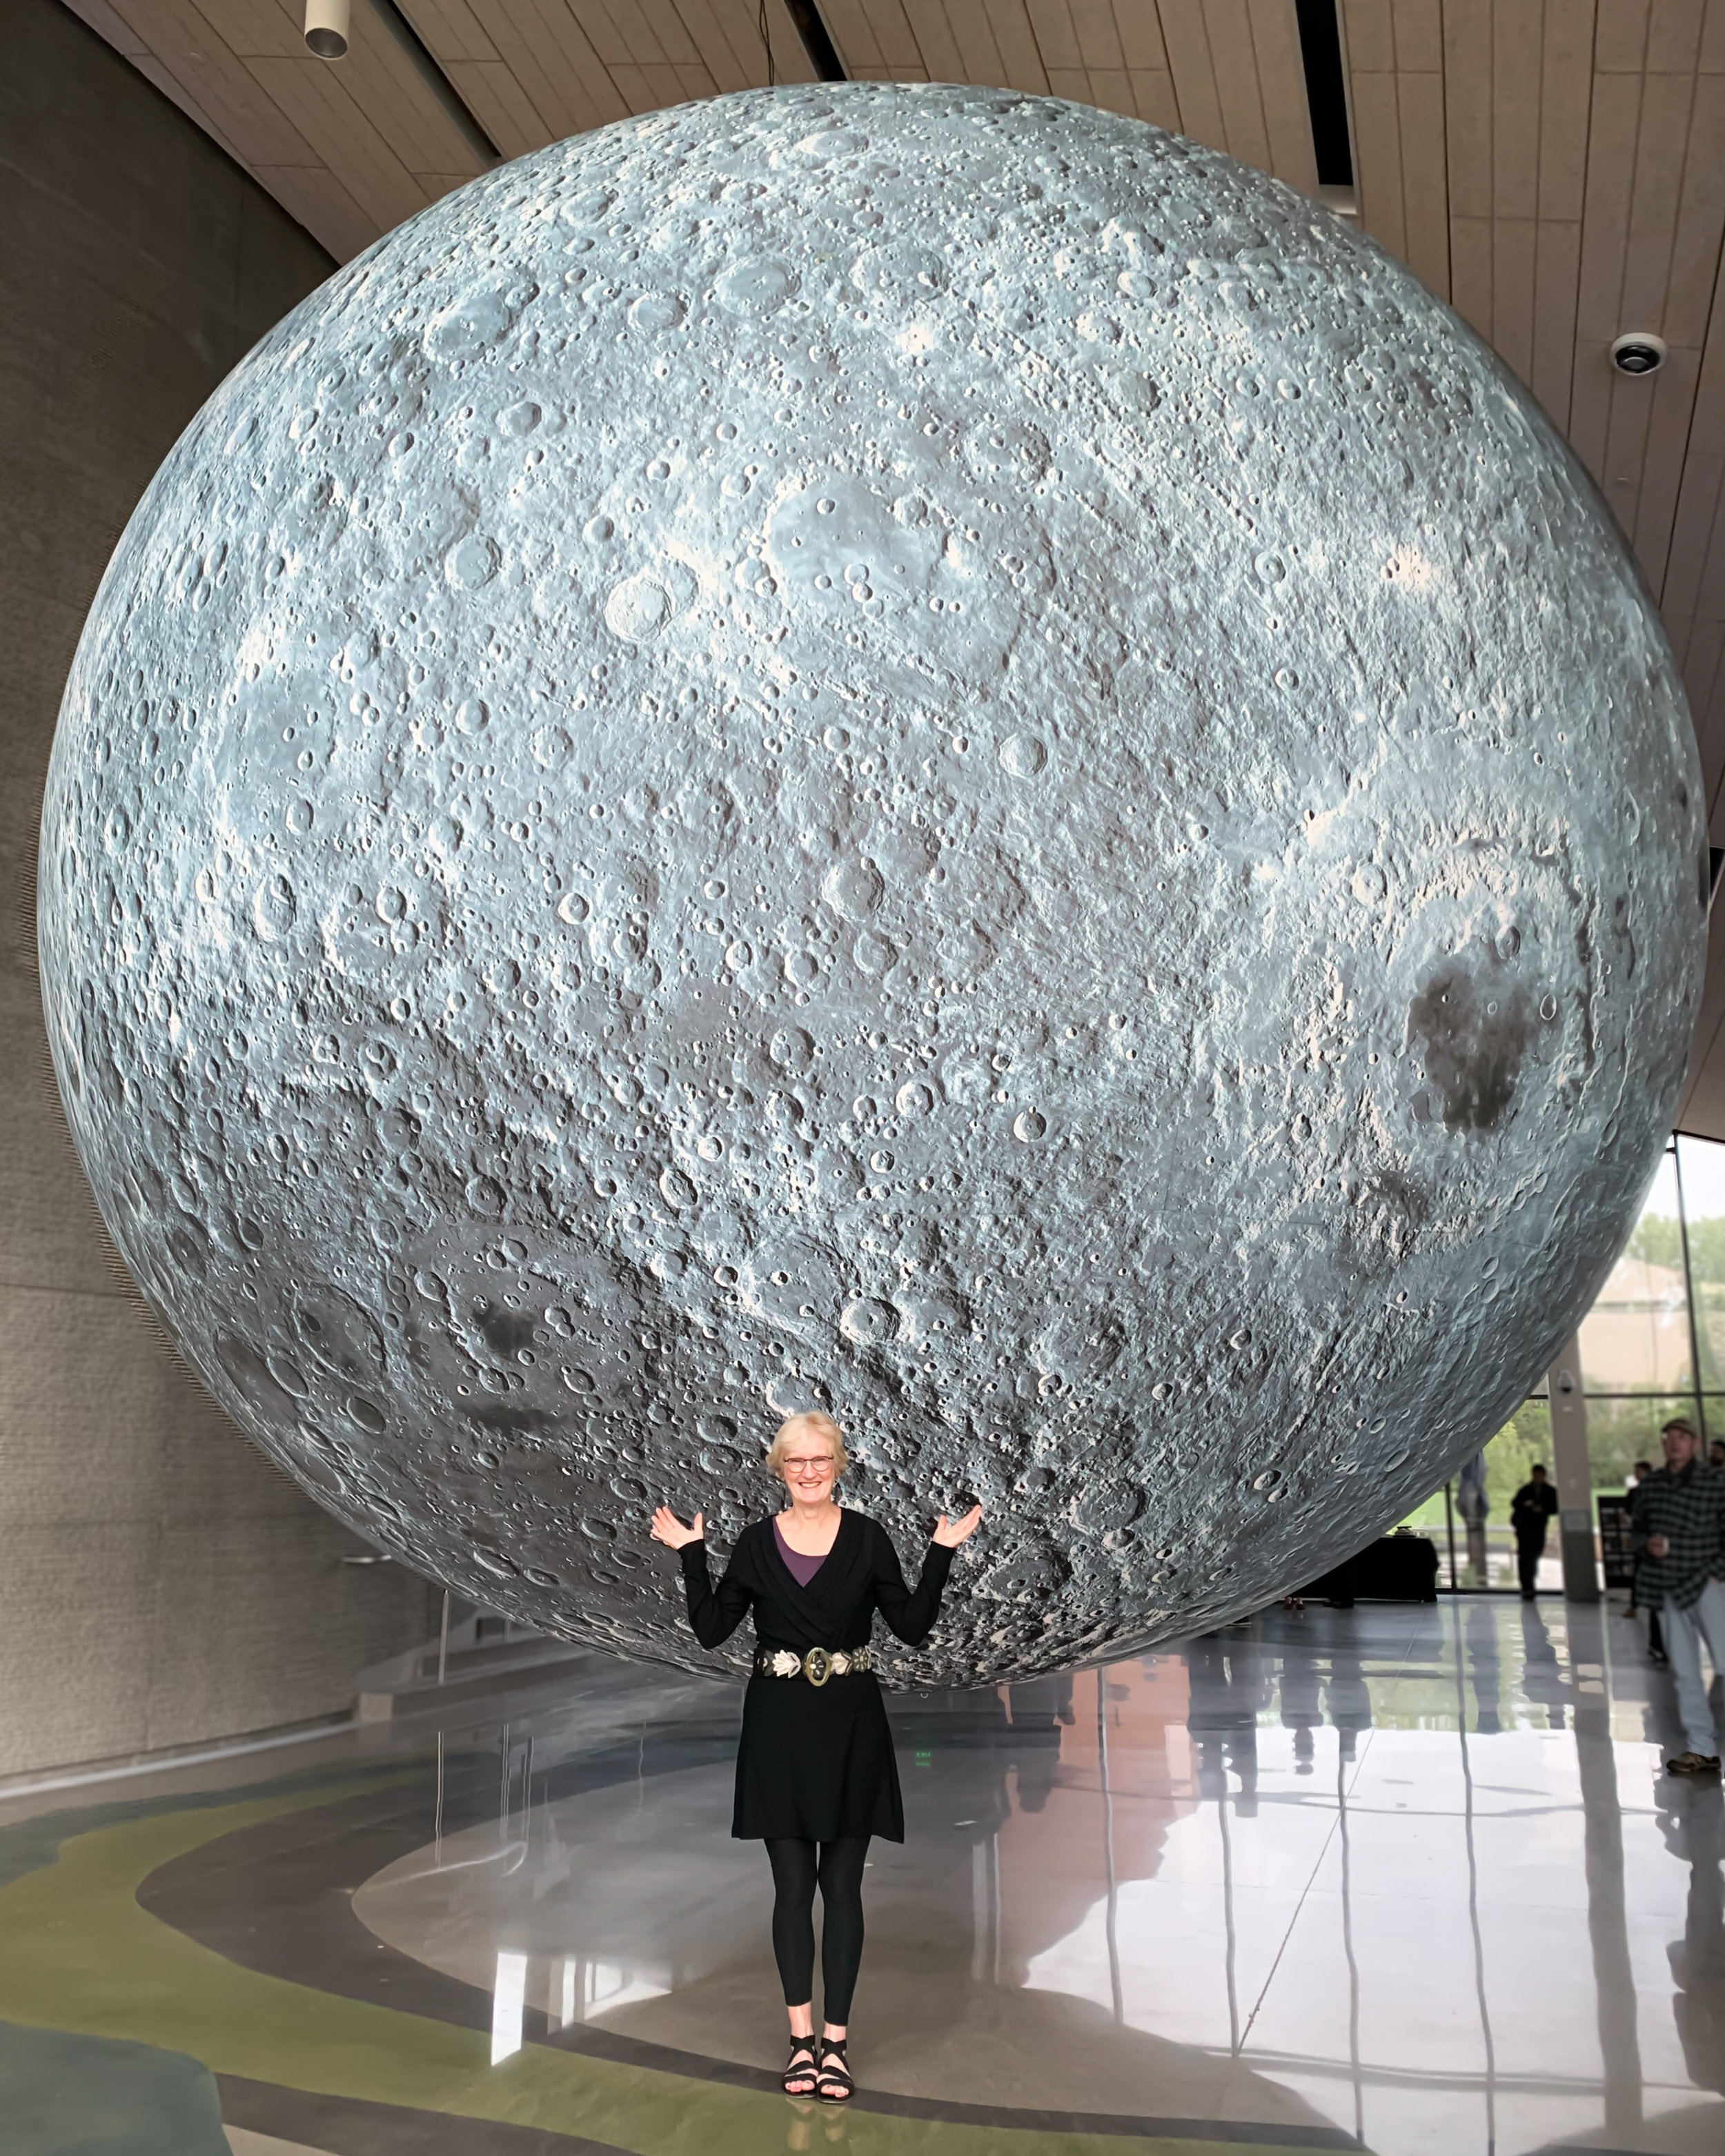 Special thanks to my model Denise! I am working on a special non-profit fundraiser project for senior citizens with the Art of Edina and used the moon as our first backdrop!